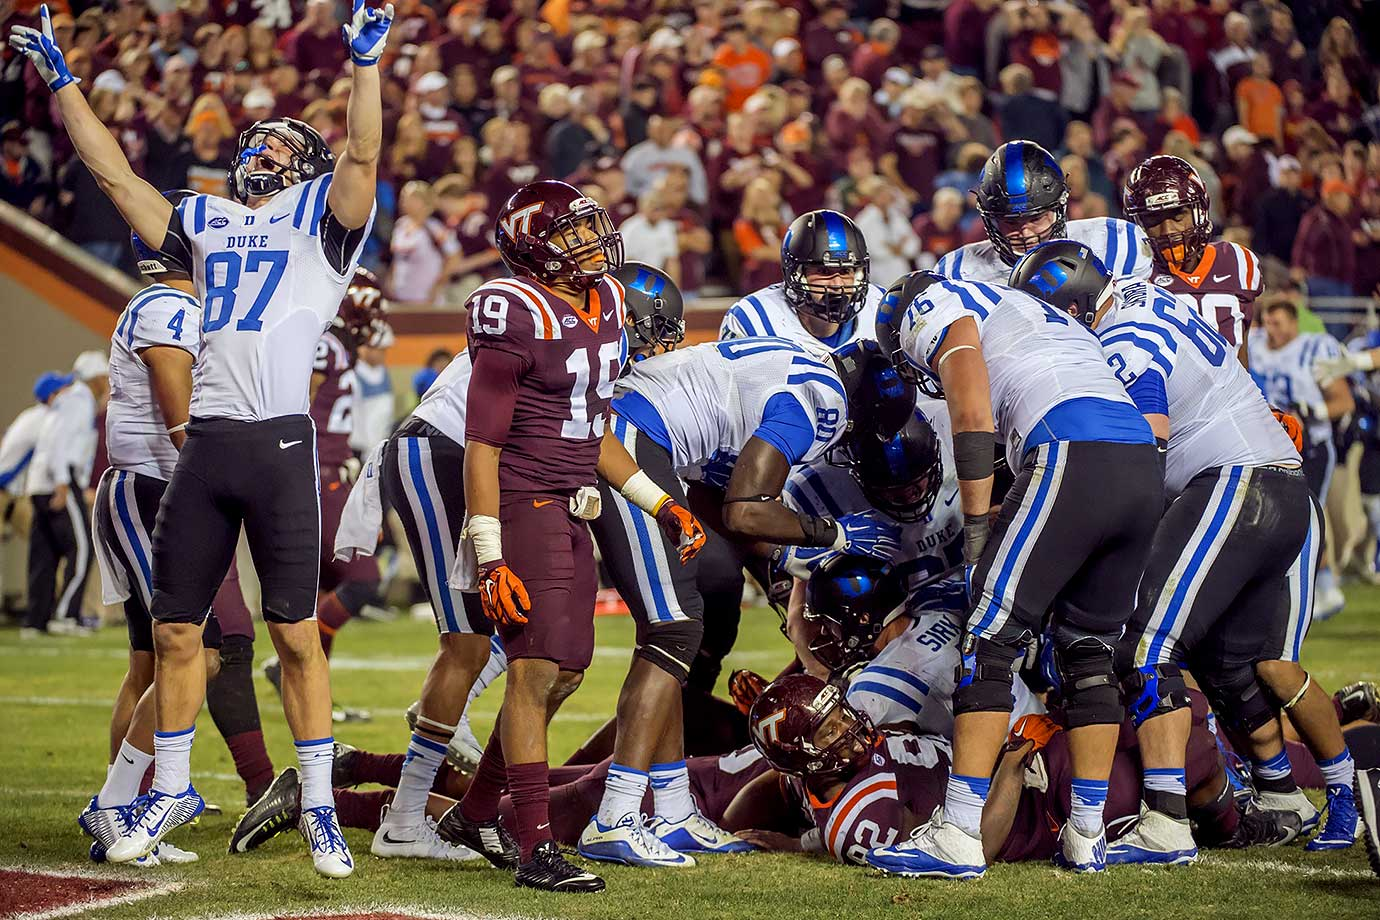 The normally defensive led Blue Devils got four touchdown passes from quarterback Thomas Sirk before he ran for the game-winning two-point conversion to defeat Virginia Tech in the longest game in ACC history. The Hokies scored the first touchdown in the fourth overtime, but with the rules mandating that teams go for 2-point conversions after two overtimes, Virginia Tech quarterback Michael Brewer attempted to sneak a pass into Isaiah Ford that was knocked away by Duke's Deondre Singleton.